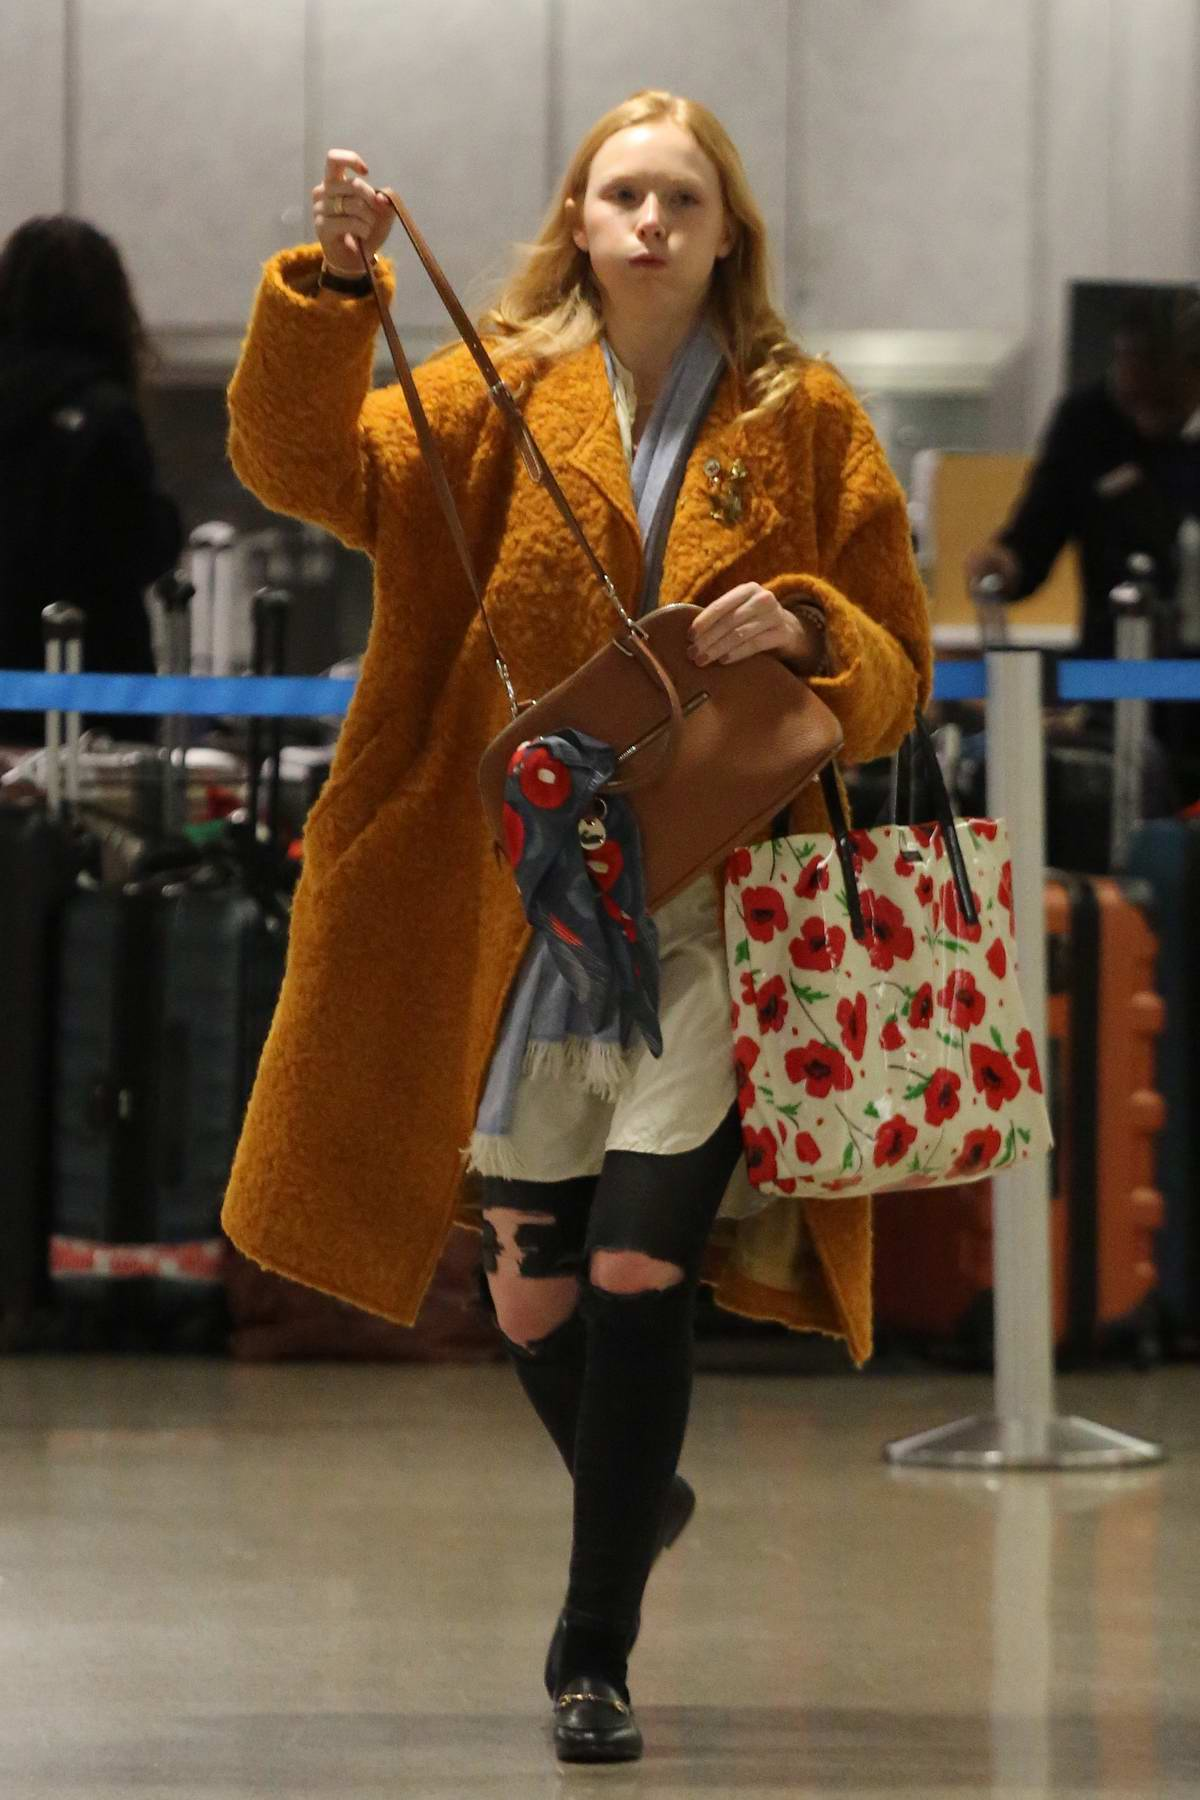 Molly Quinn in an orange coat arrives at LAX airport in Los Angeles